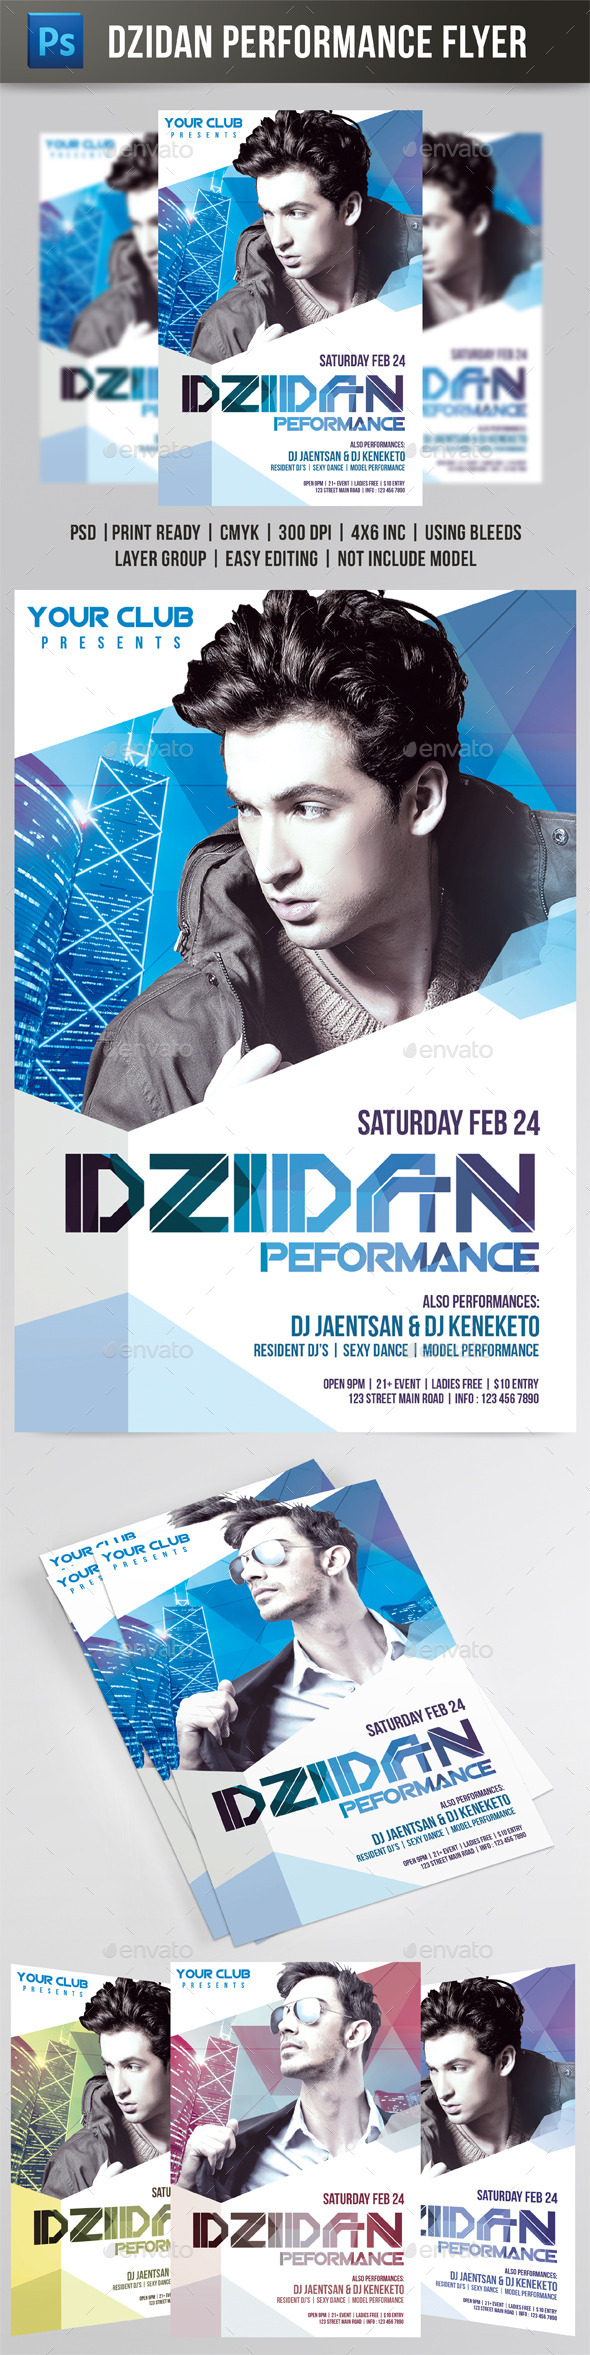 GraphicRiver Dzidan Performance Flyer 9615947